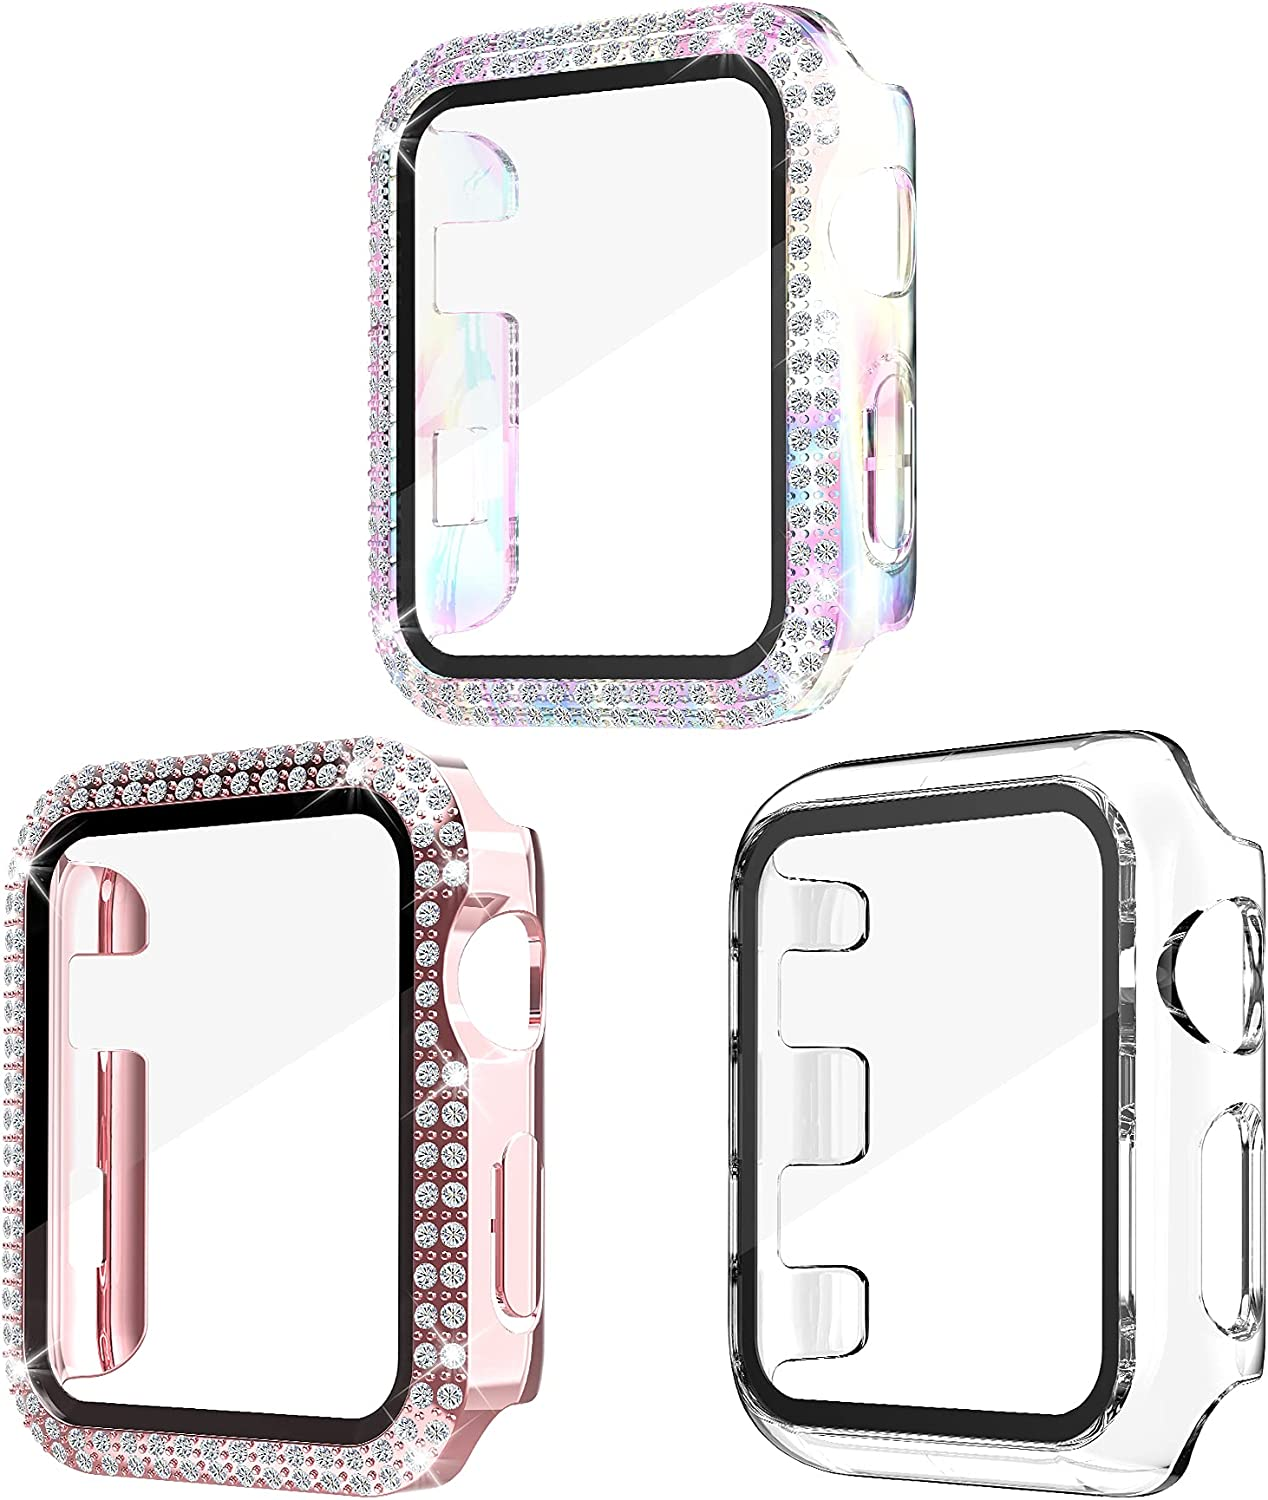 Yooyatt 3 Pack Bling Cases Compatible for Apple Watch 38/40/42/44mm with Tempered Glass Screen Protector for iWatch SE Series 6/5/4/3/2/1 (38mm, Pink + Colorful + Clear)